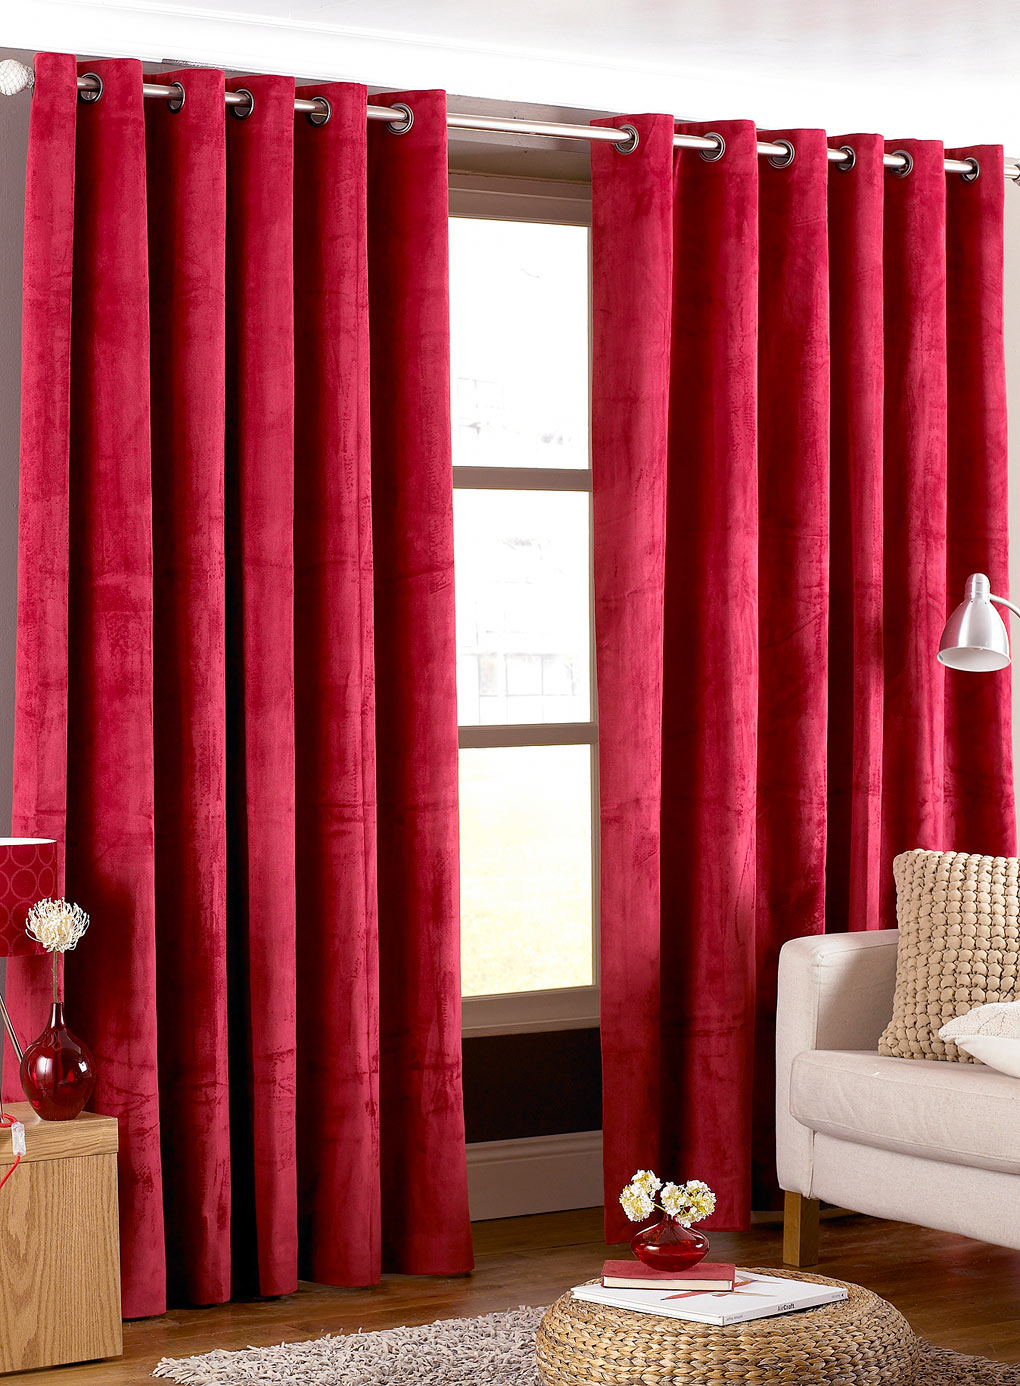 Latest-red-and-gray-striped-curtains 20+ Hottest Curtain Design Ideas for 2021